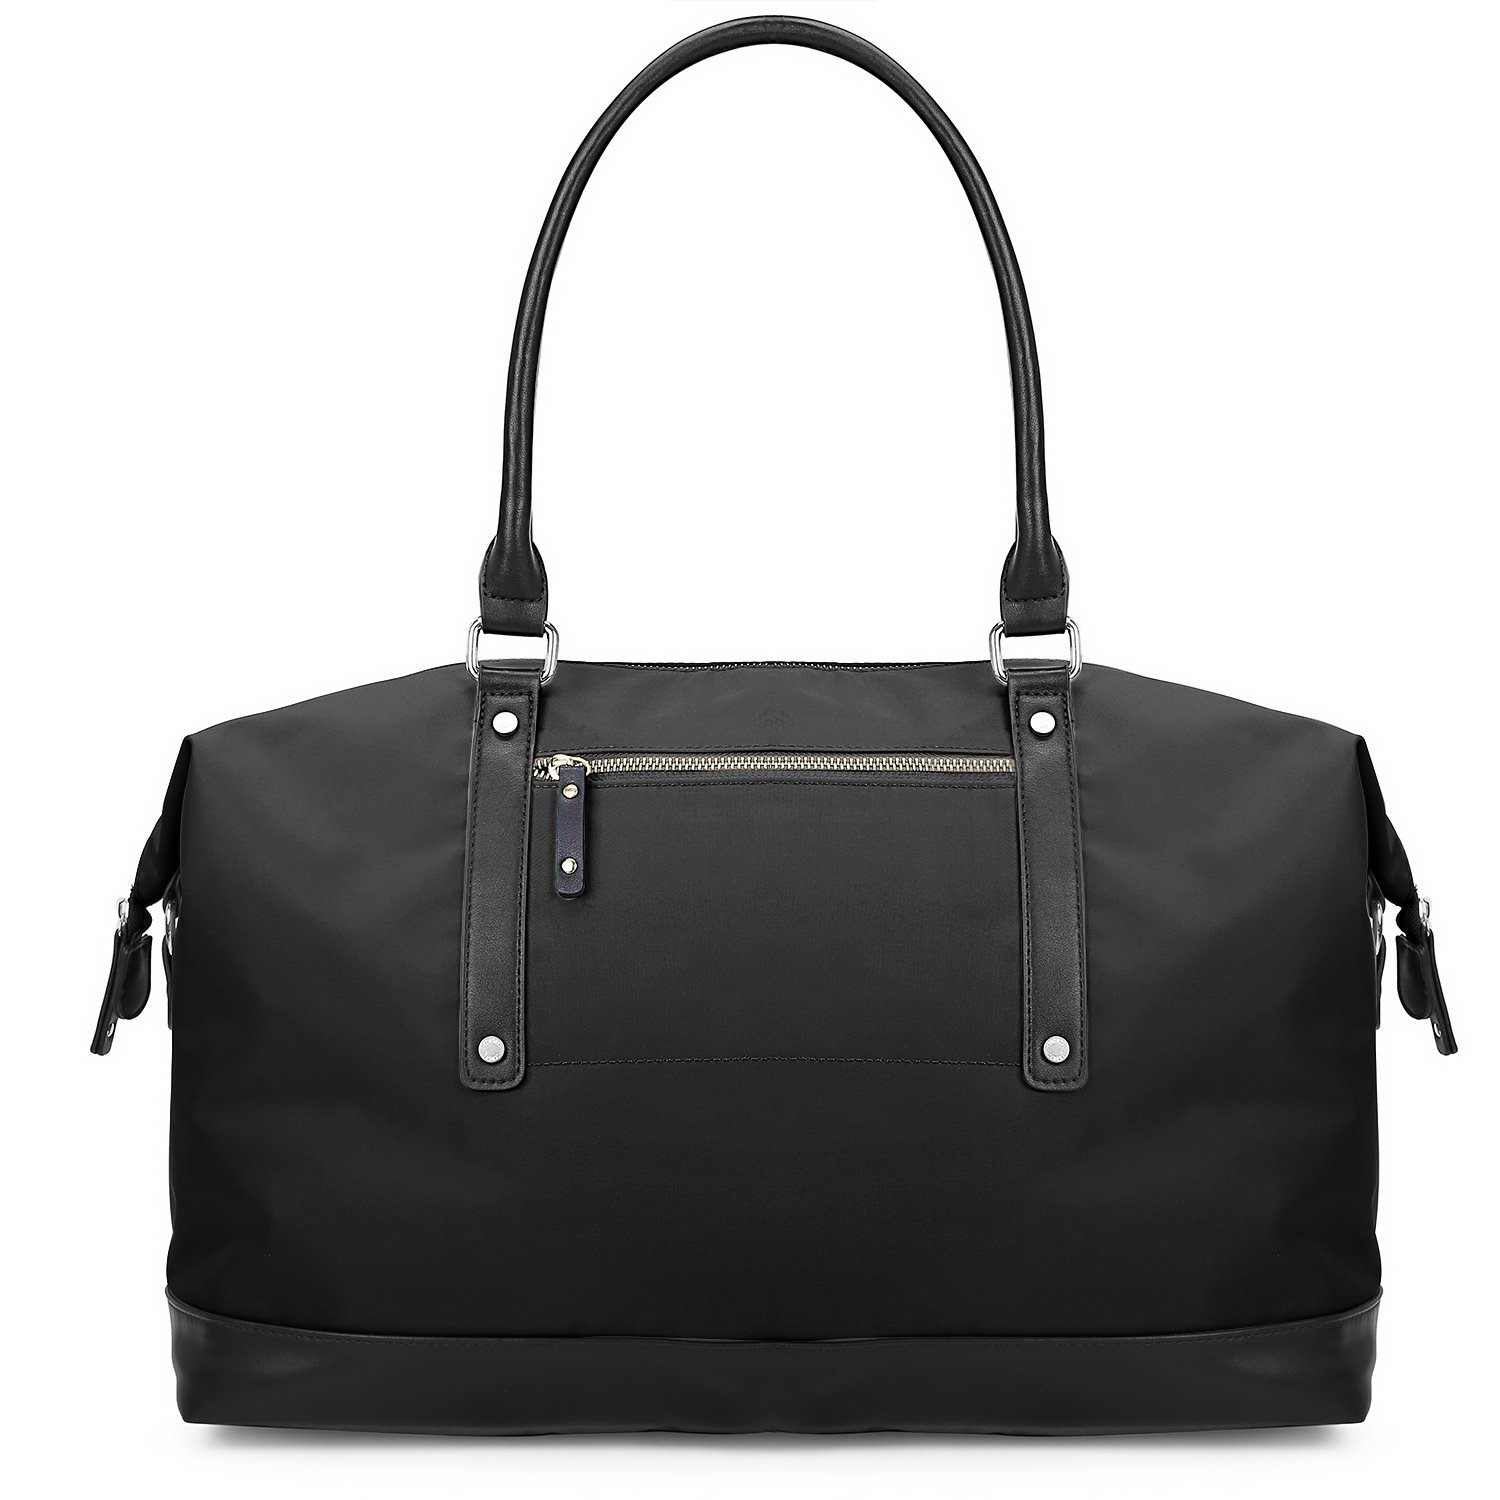 ECOSUSI Duffel Bag Weekender Overnight Bag Large Travel Tote Shoulder Bag with Trolley Sleeve for Men & Women, Black by ECOSUSI